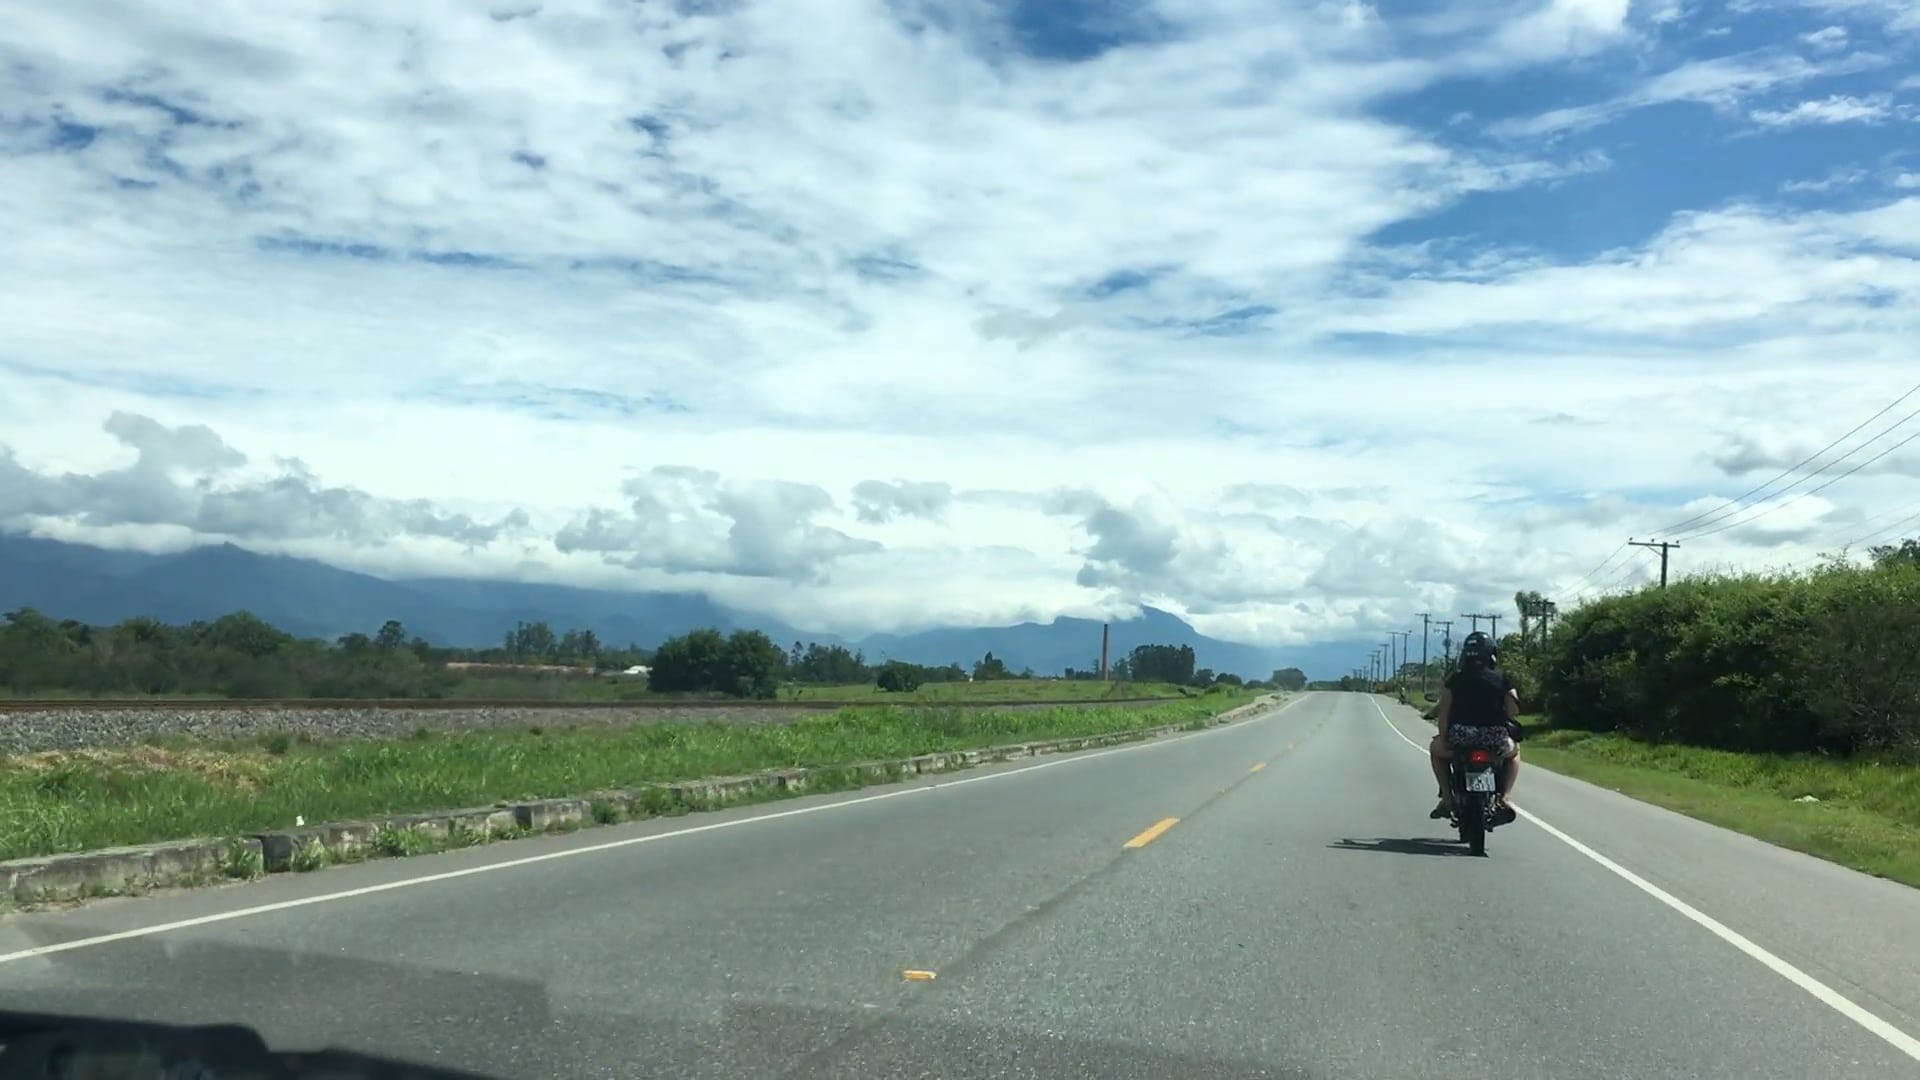 People On Motorcycle Traveling